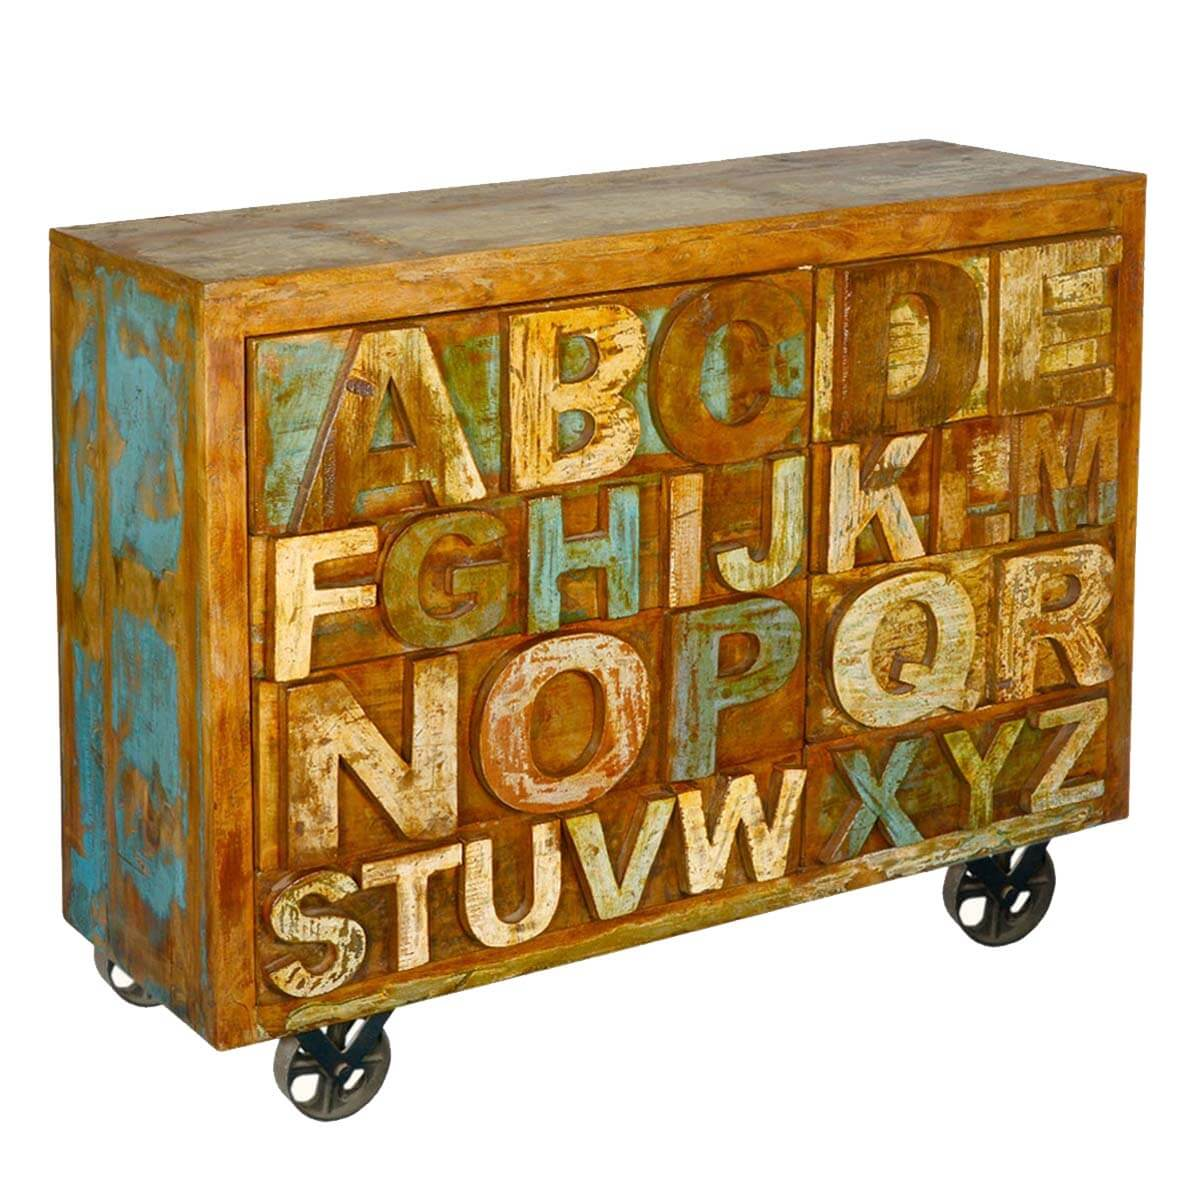 Hand Carved ABC 8 Drawers Dresser Chest Reclaimed Wood Furniture